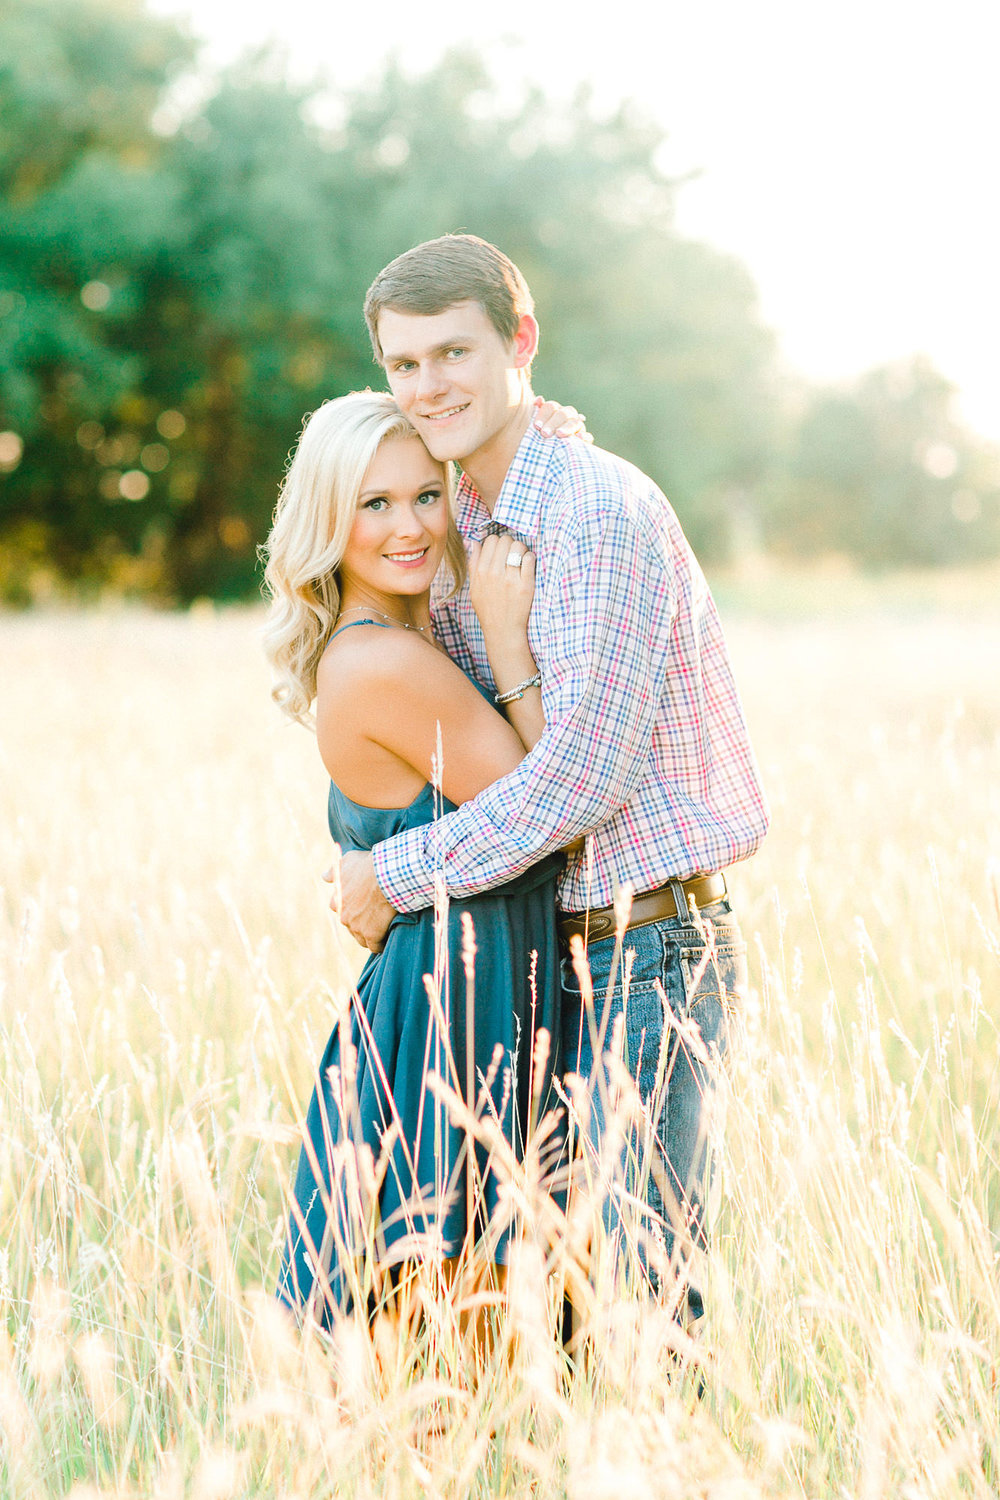 engagement-photography-alleej-lubbock-texas-ransom-canyon-texas-tech-weddings_0003.jpg